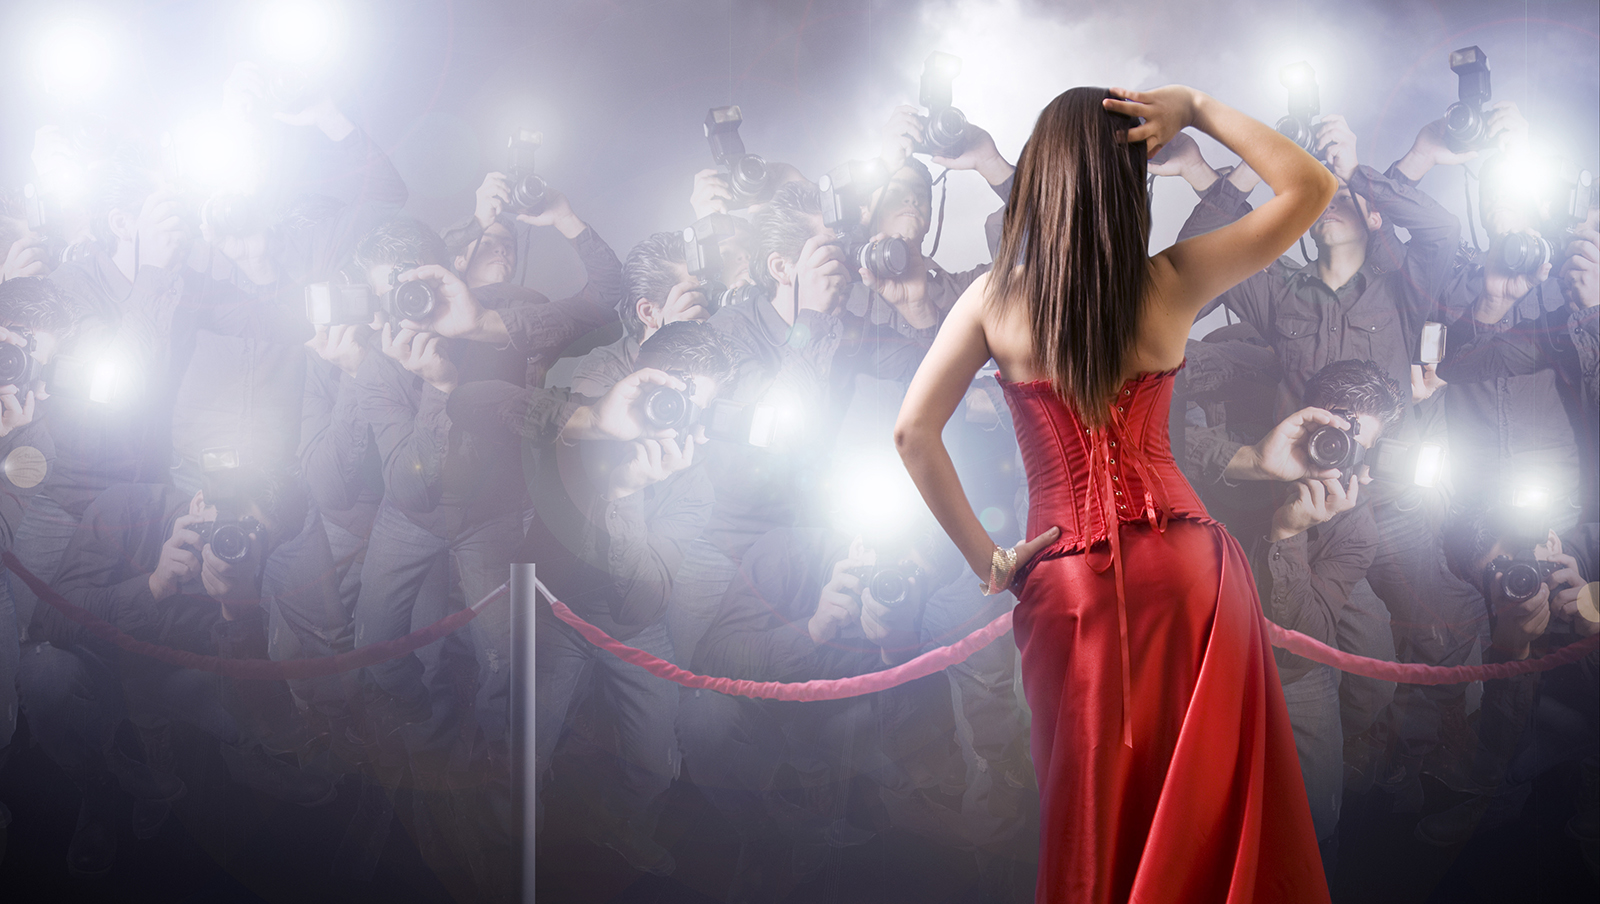 celebrity-being-photographed-on-the-red-carpet-from-behind